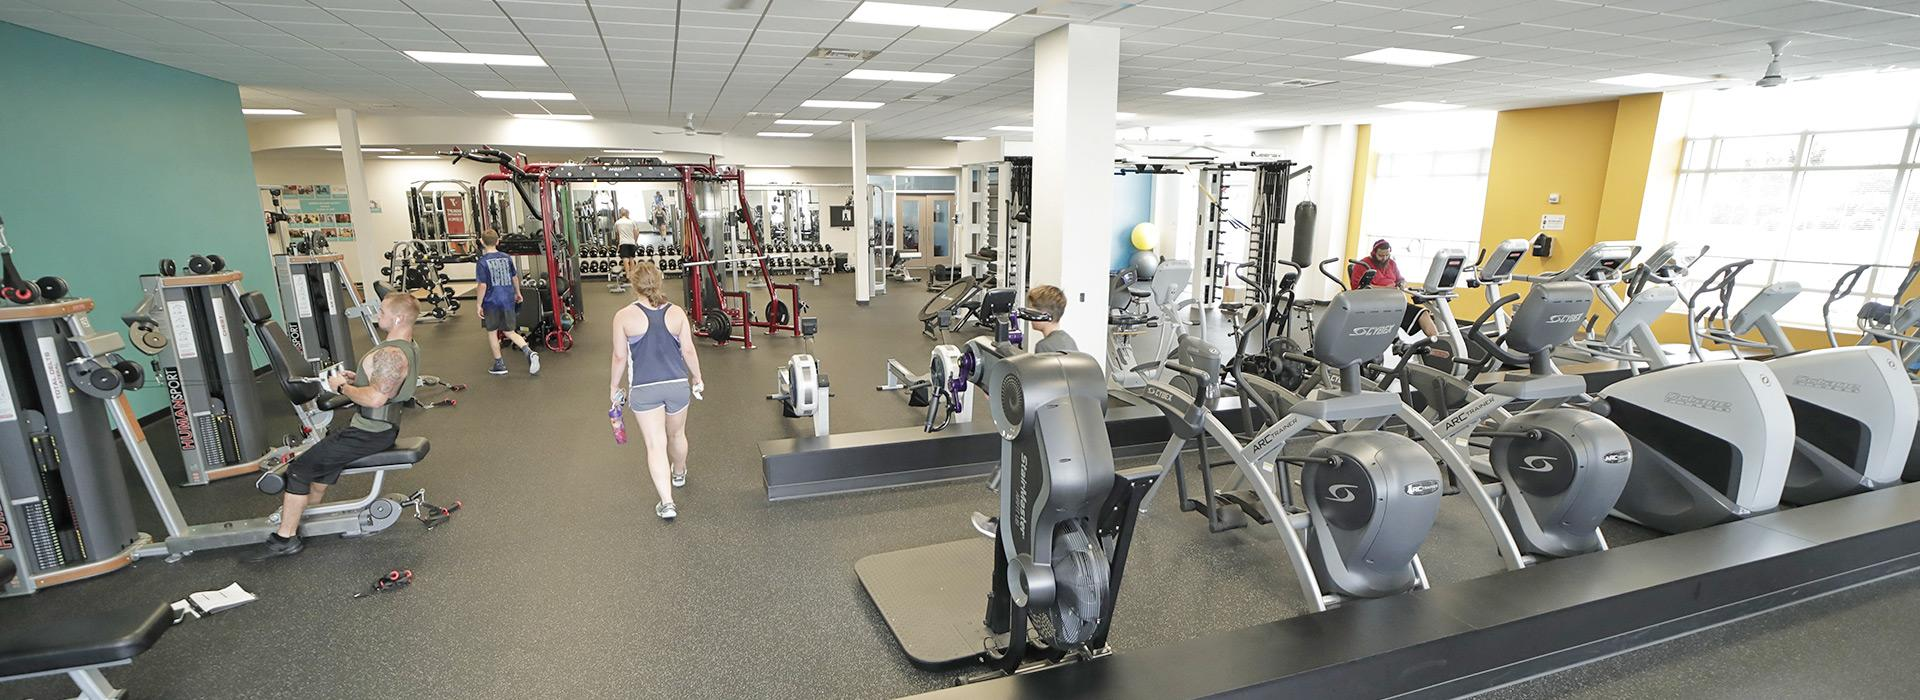 Cardio equipment including treadmills, ellipticals, bikes and steppers at the YMCA at Edinburgh